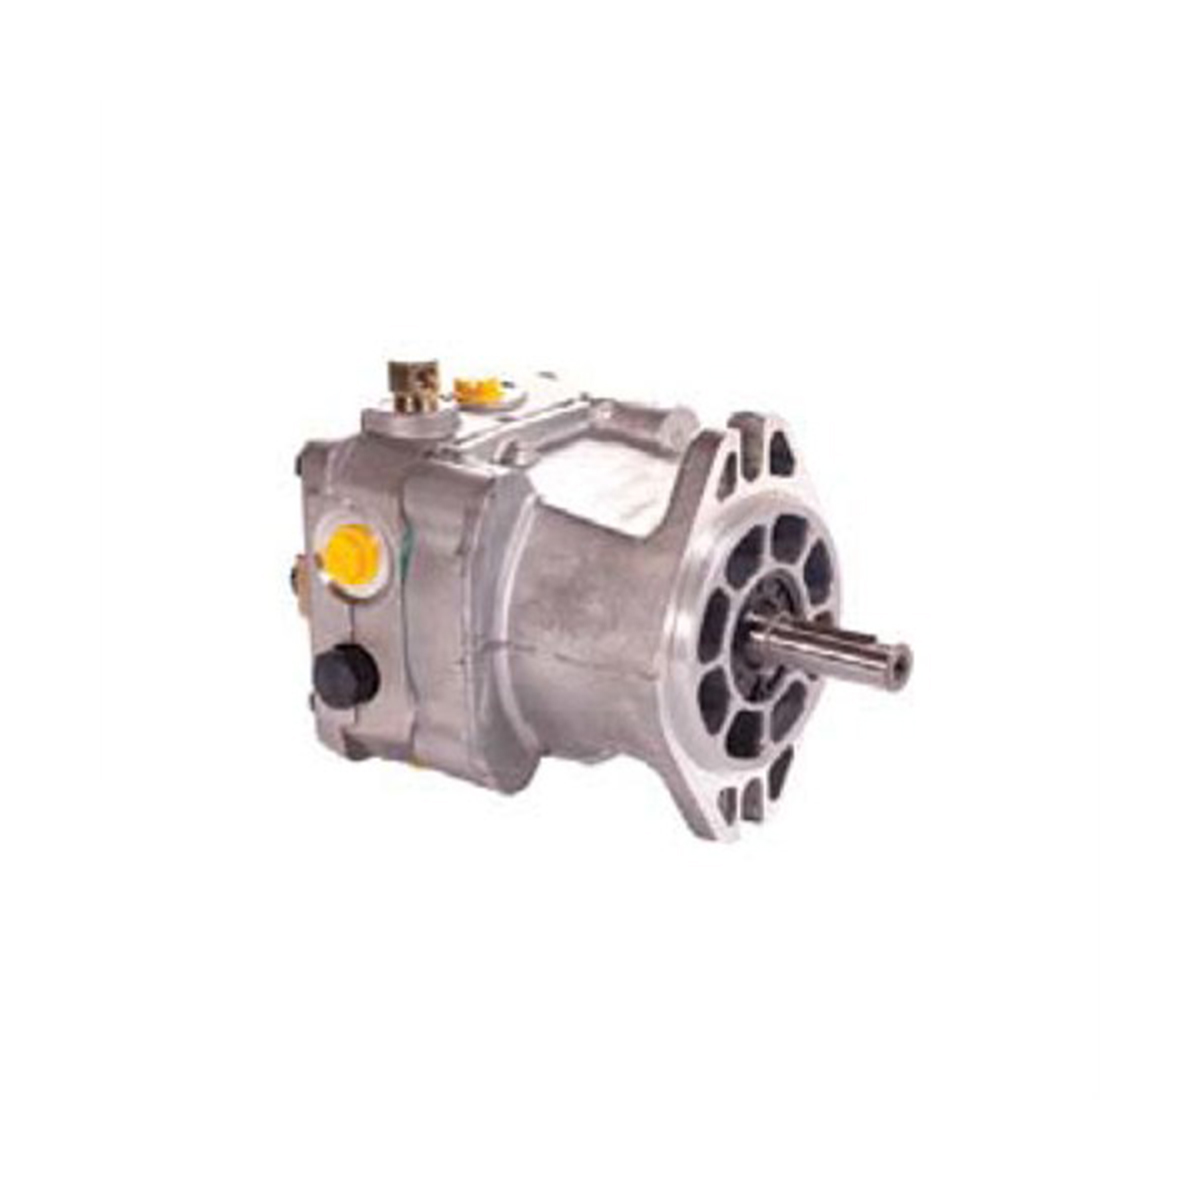 200309 Dixie Chopper Hydro-Gear Pump 12cc Lh